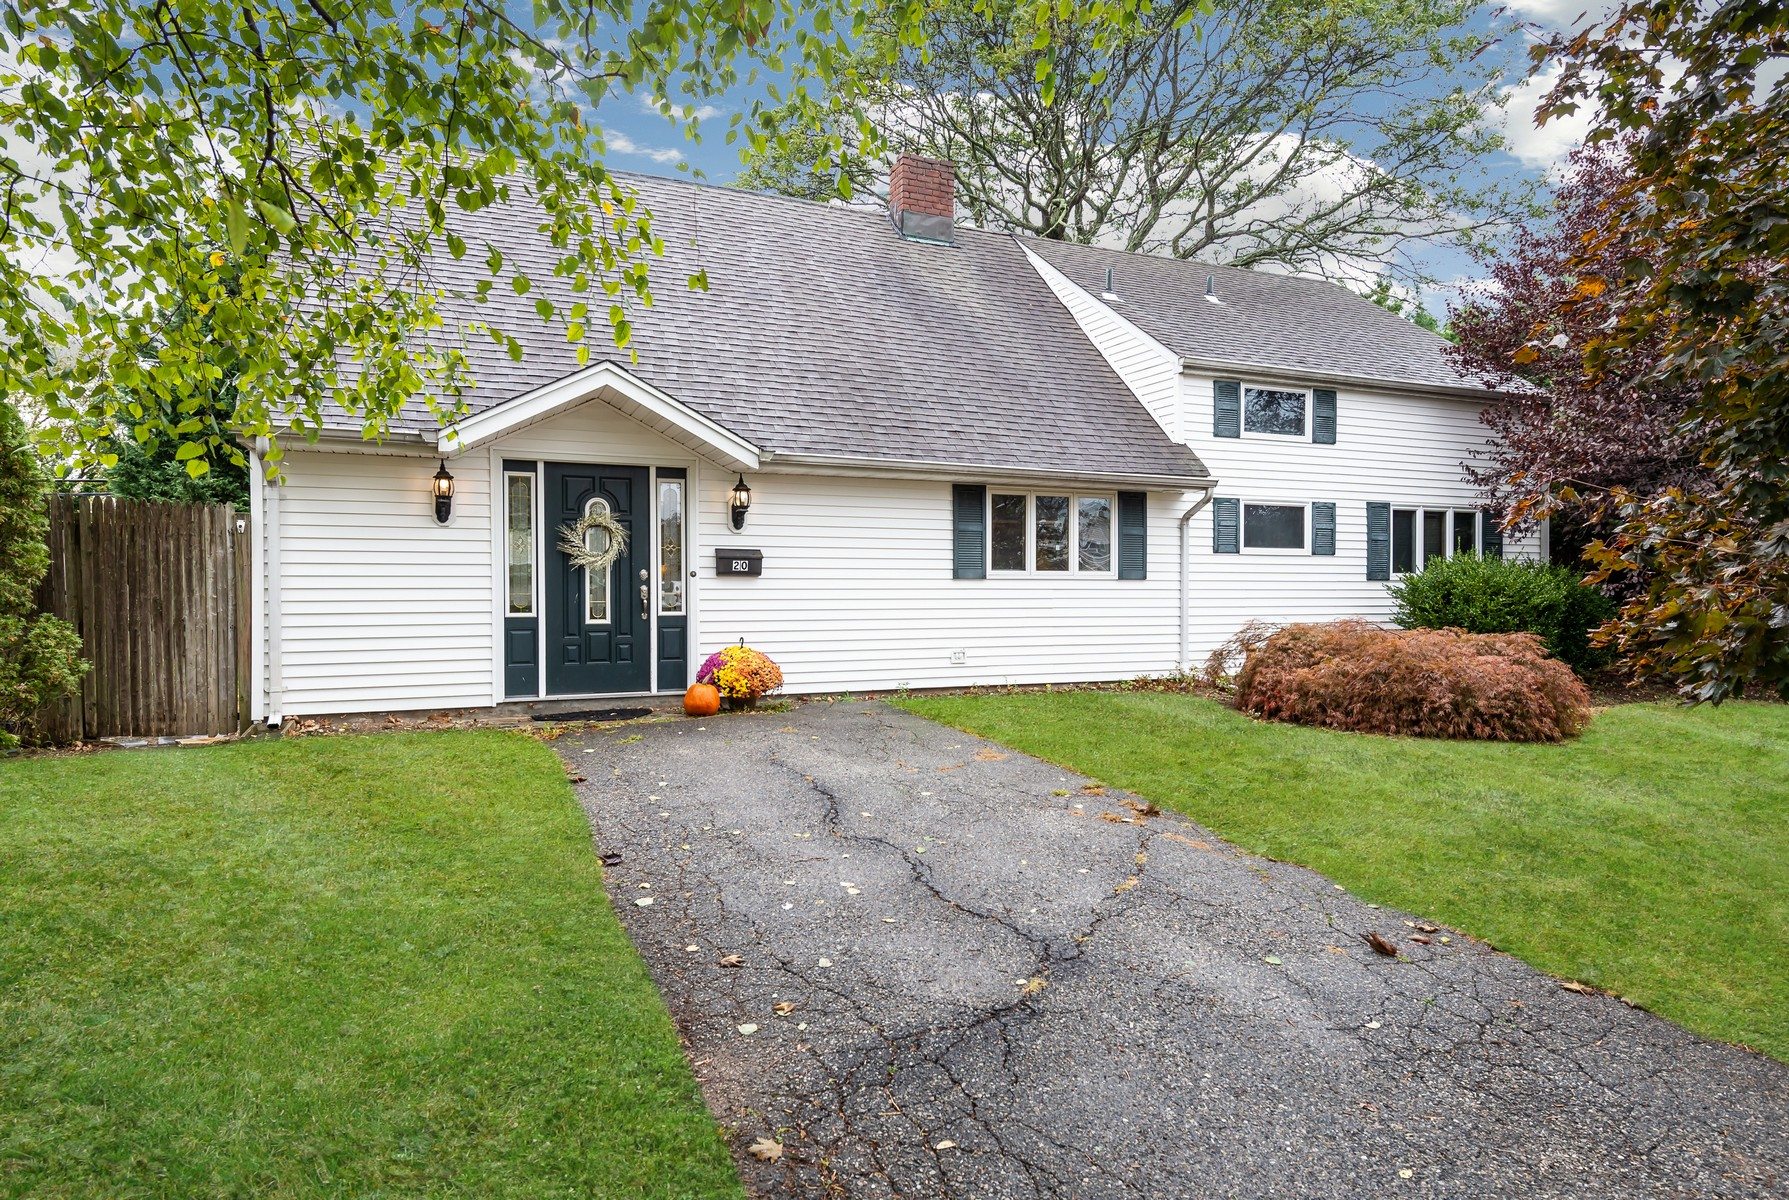 Single Family Homes for Sale at Hicksville 20 Meeting Ln Hicksville, New York 11801 United States